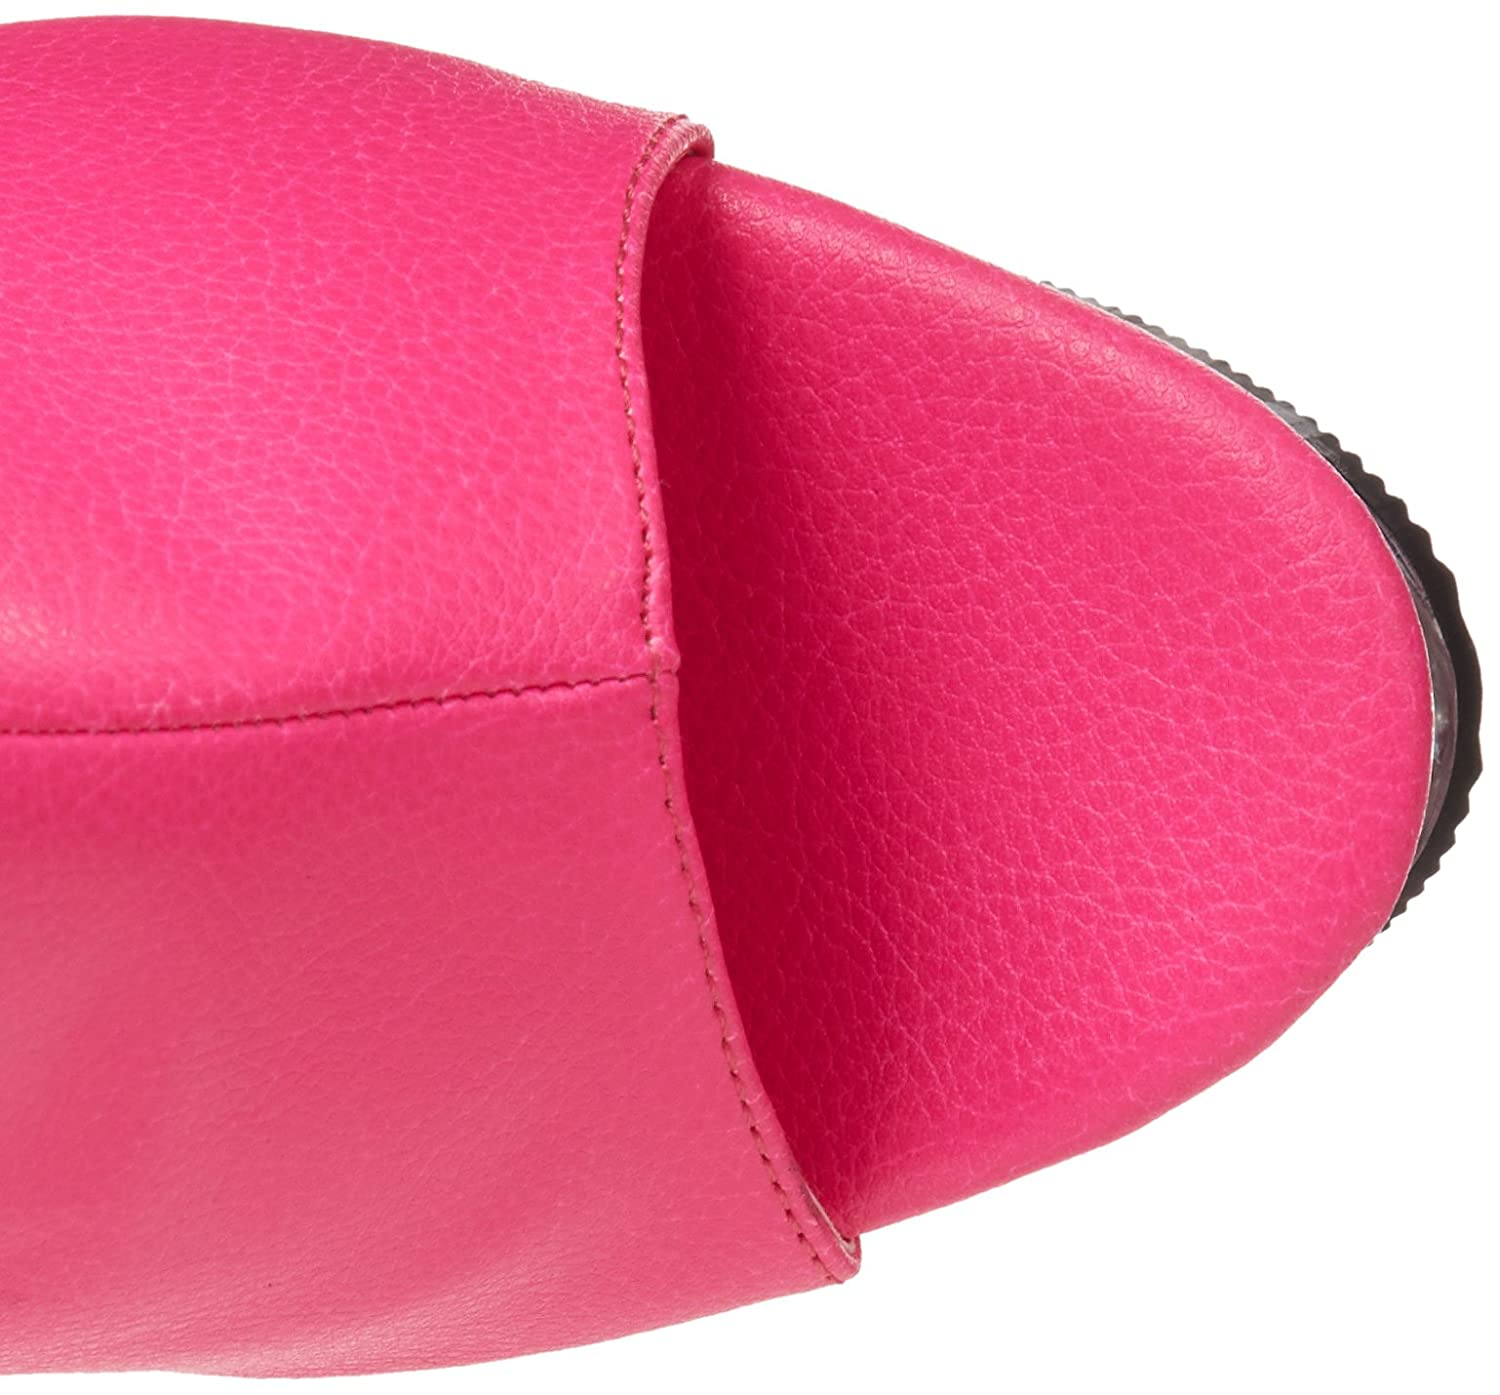 Pleaser Women's Illusion-1018 Boot B00B472PG0 7 B(M) US|Neon Hot Pink Polyurethane/Hot Pink